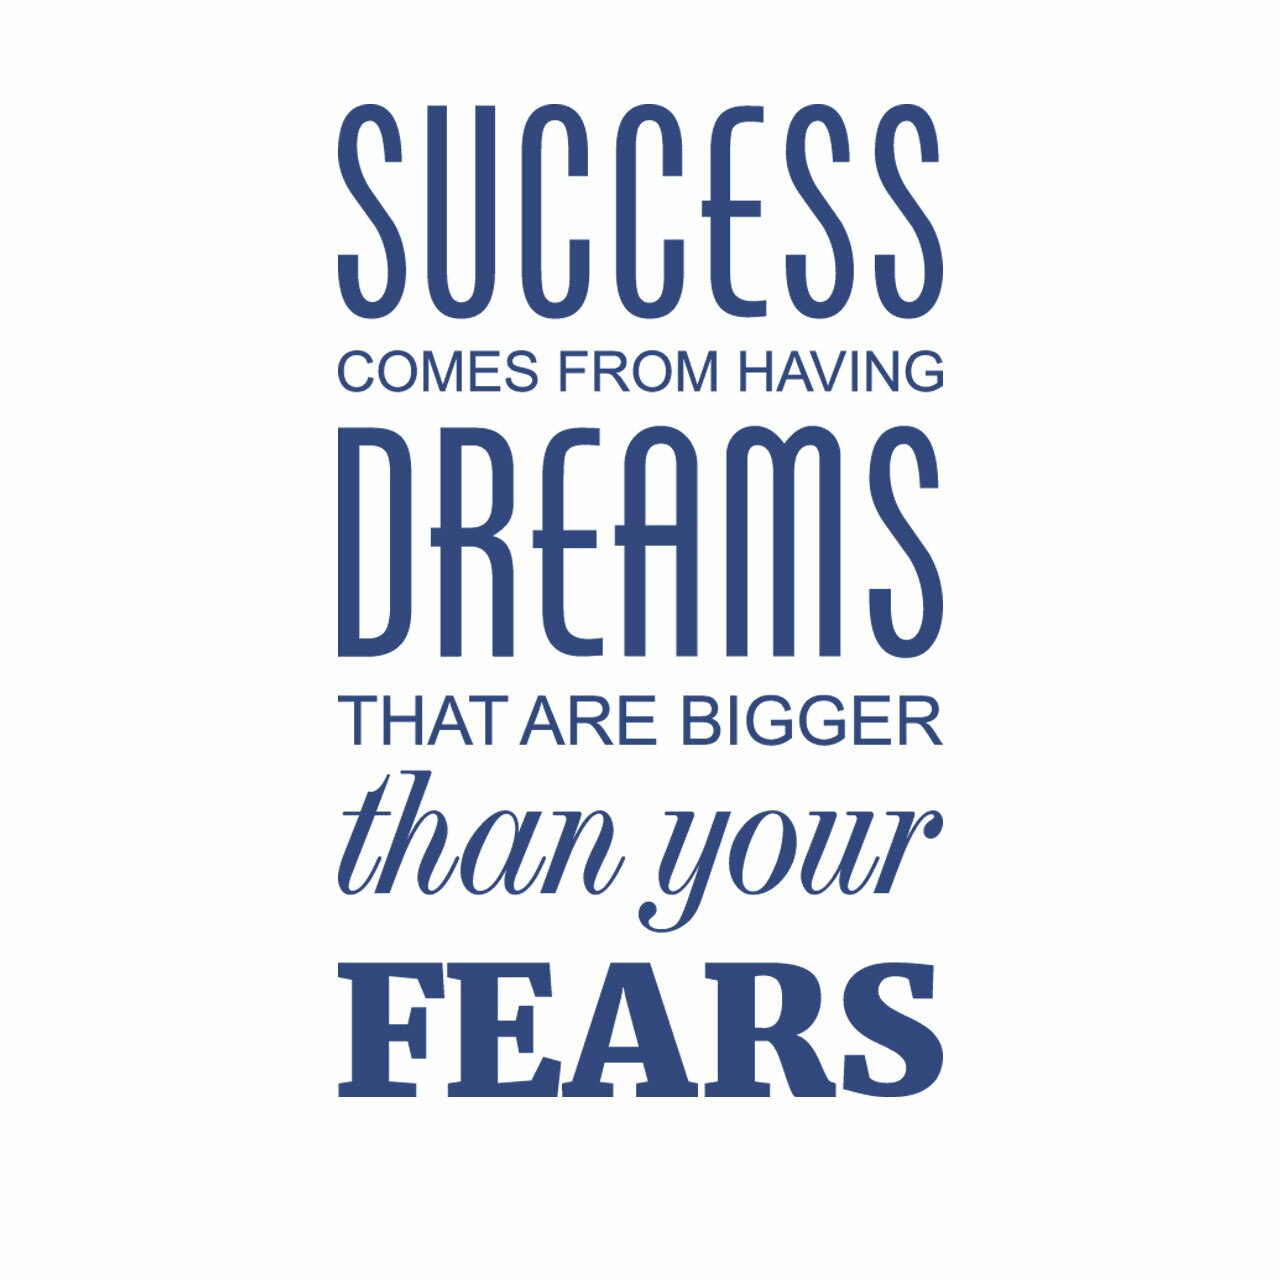 Success comes from having dreams that are bigger than your fears written in blue on a white background